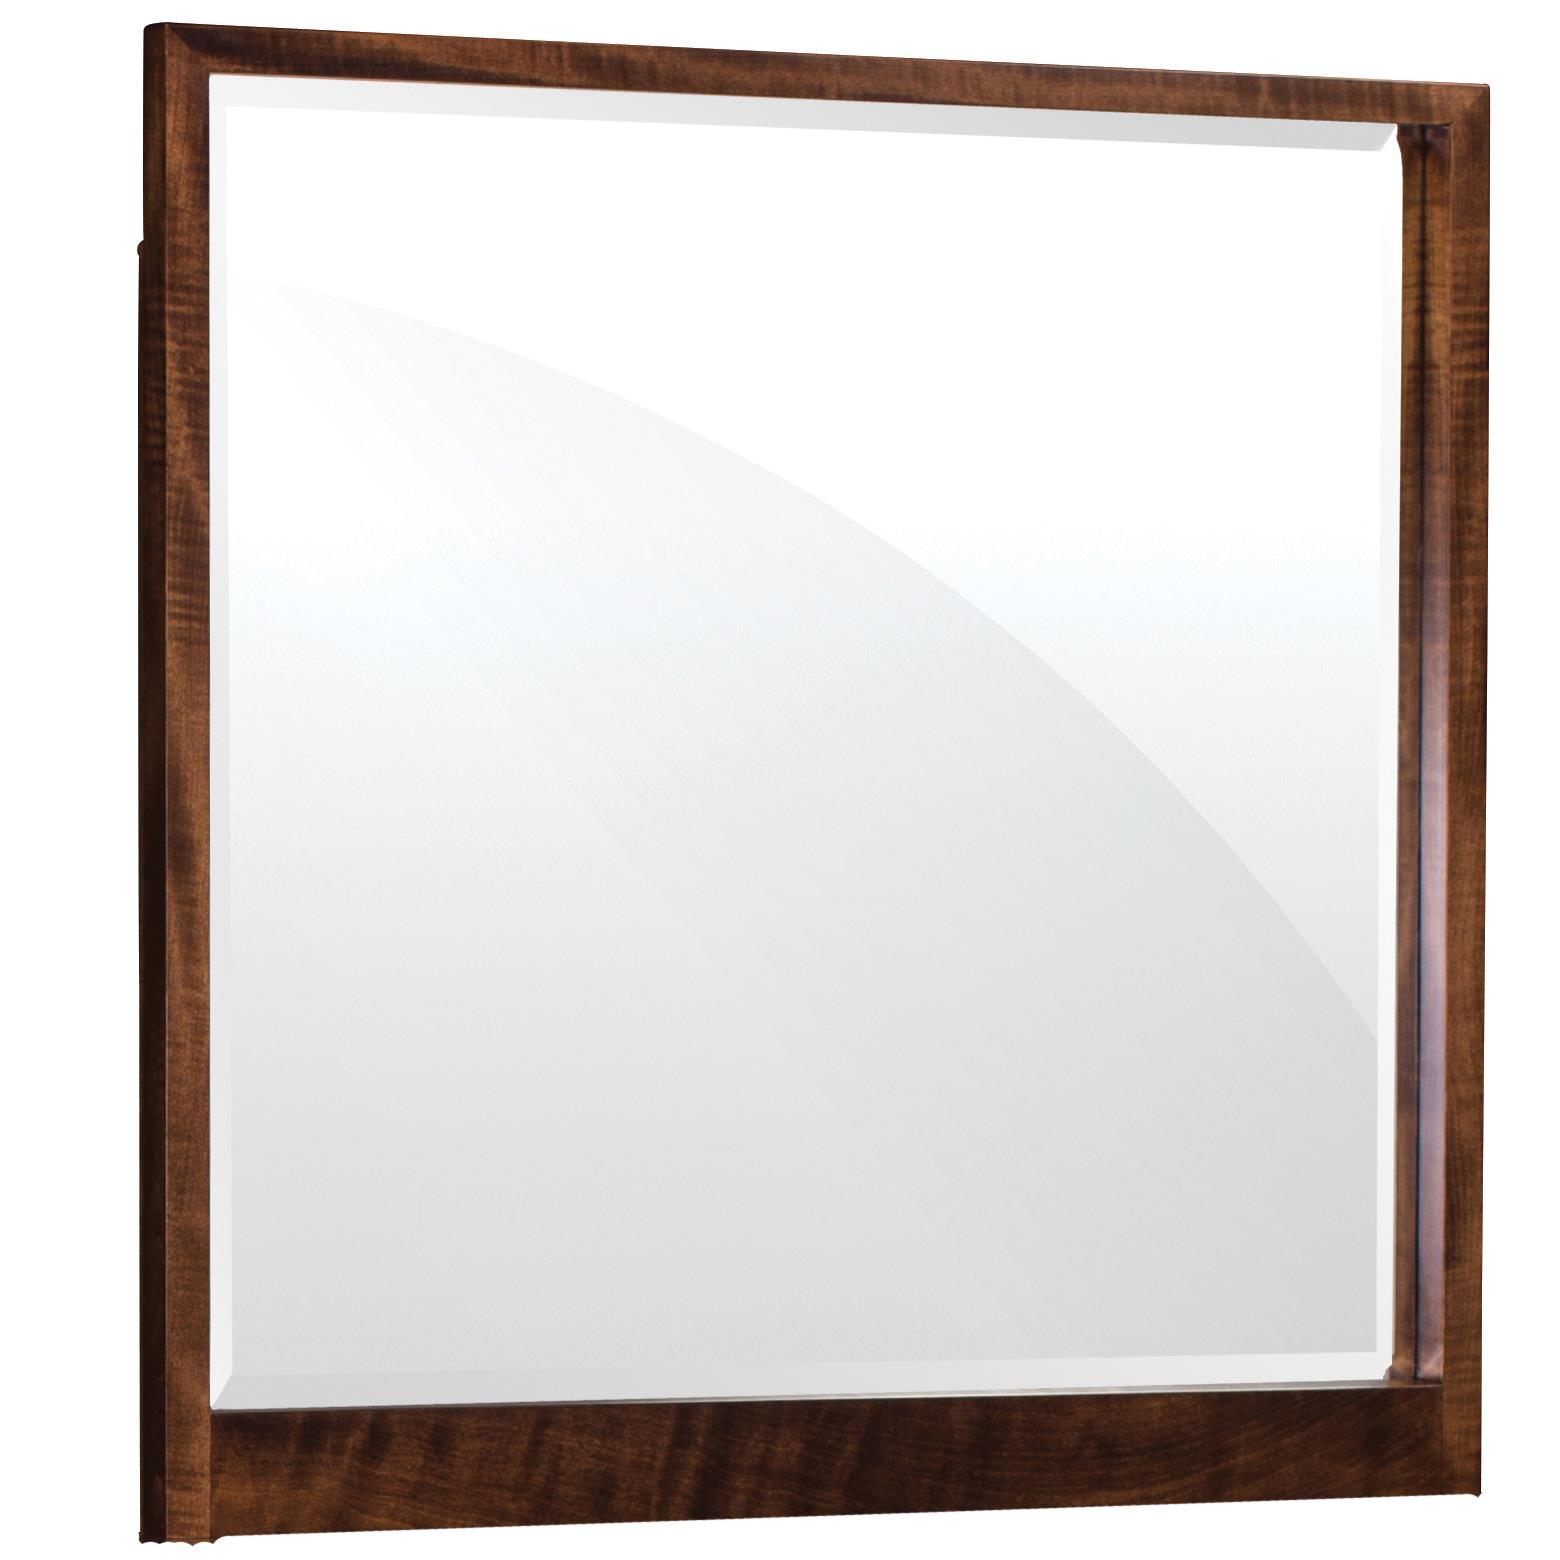 Beaumont SA Dresser Mirror by Simply Amish at Becker Furniture